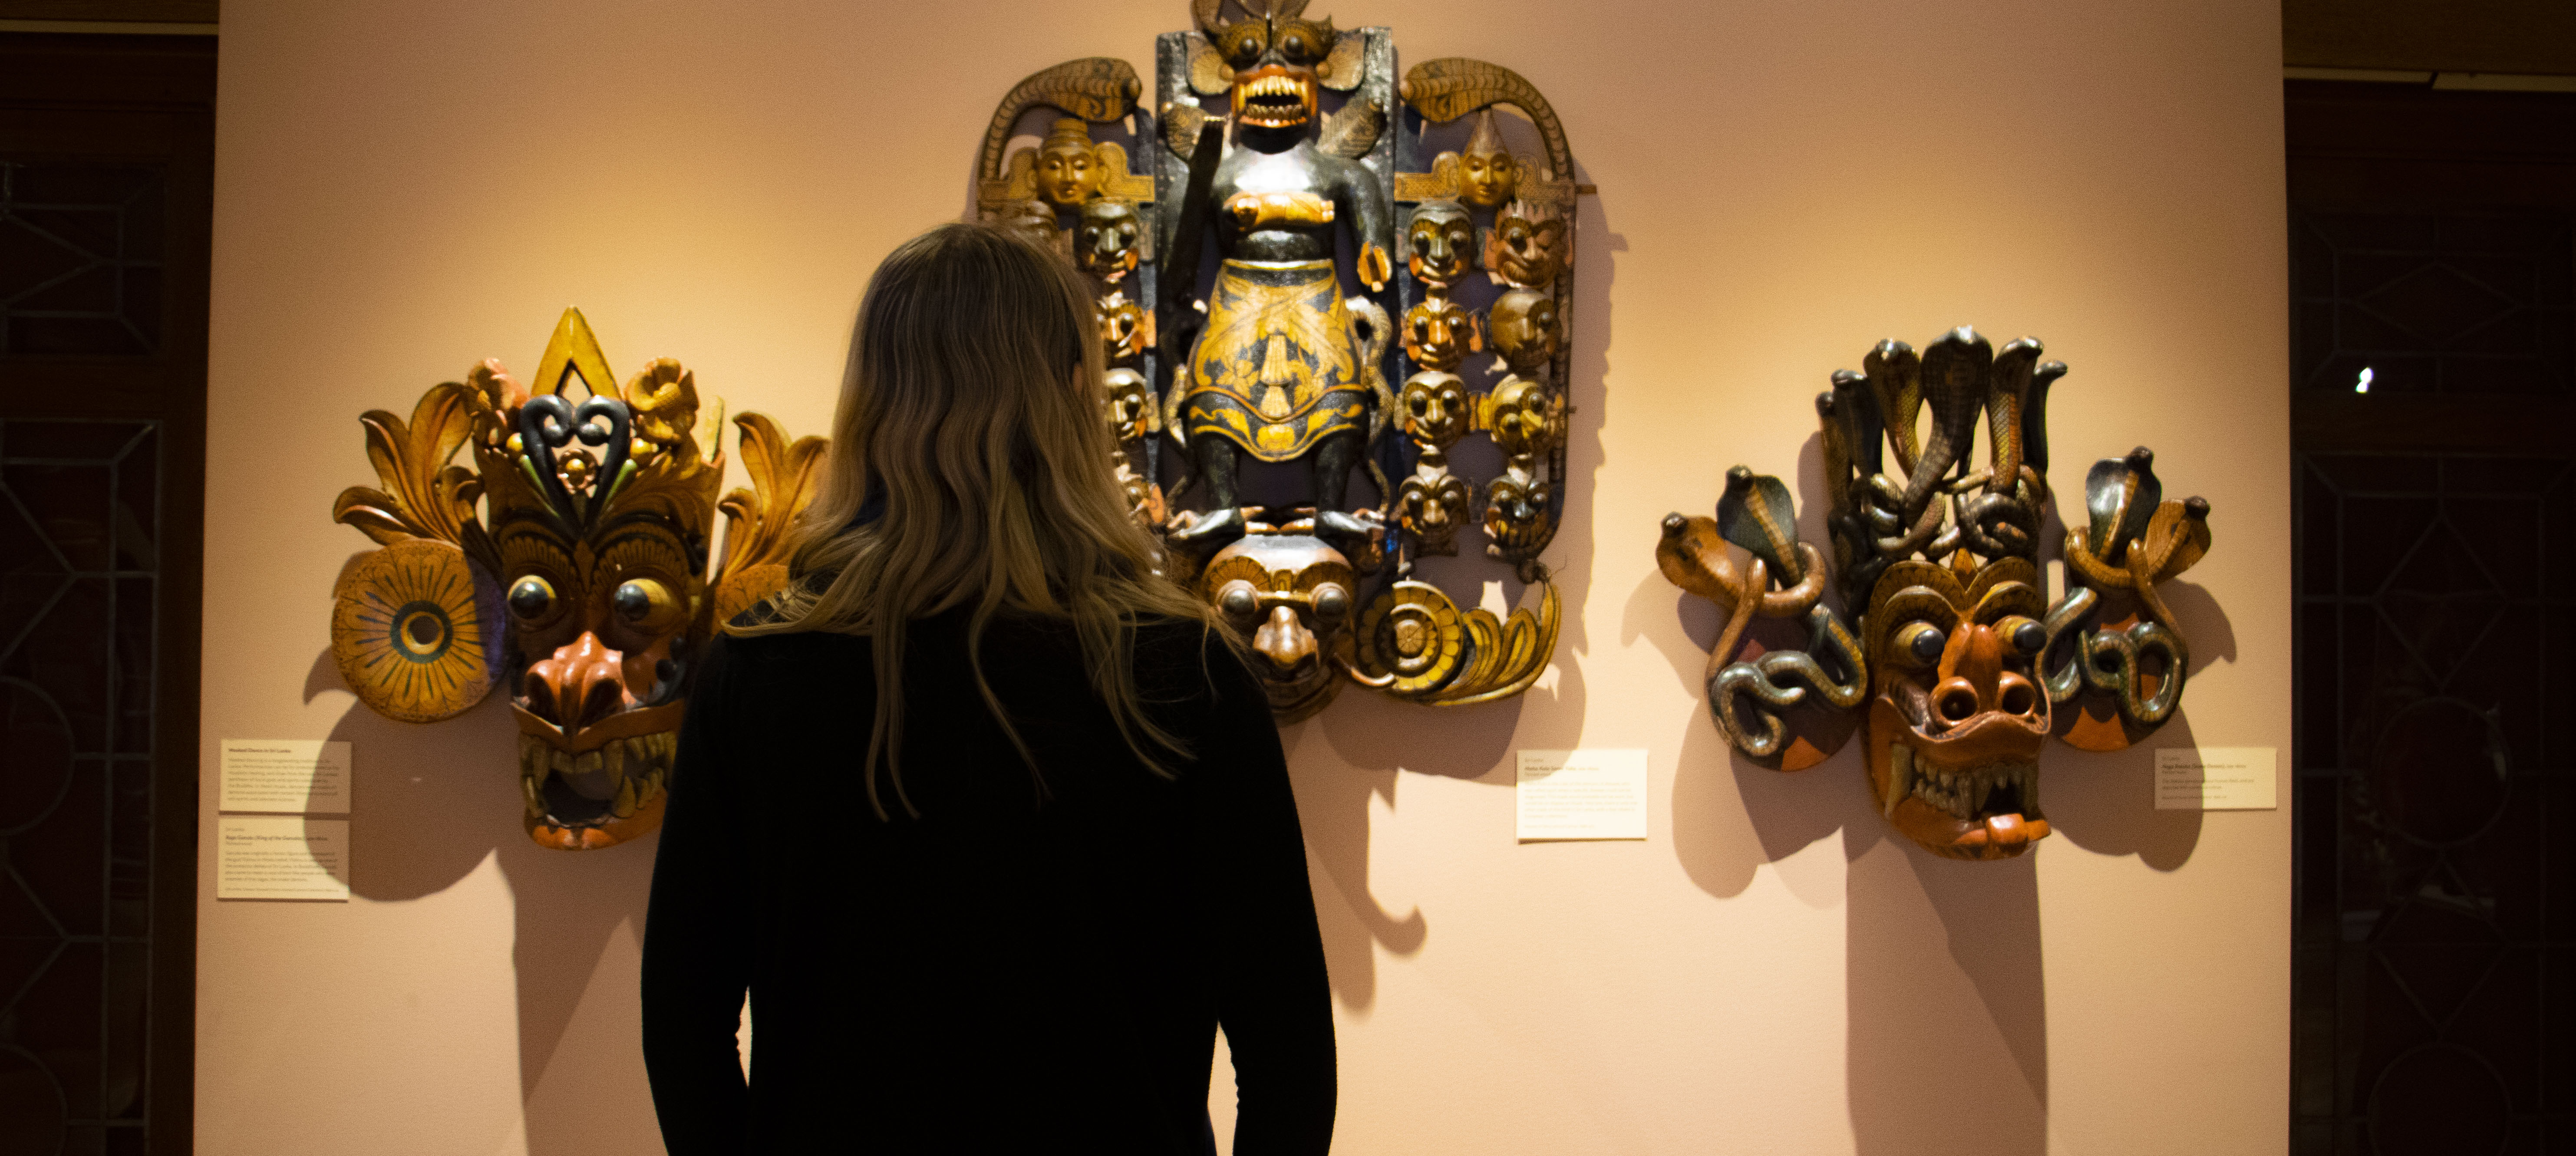 Senior Halley Malloy observes the South Asia exhibit at the Fleming Museum